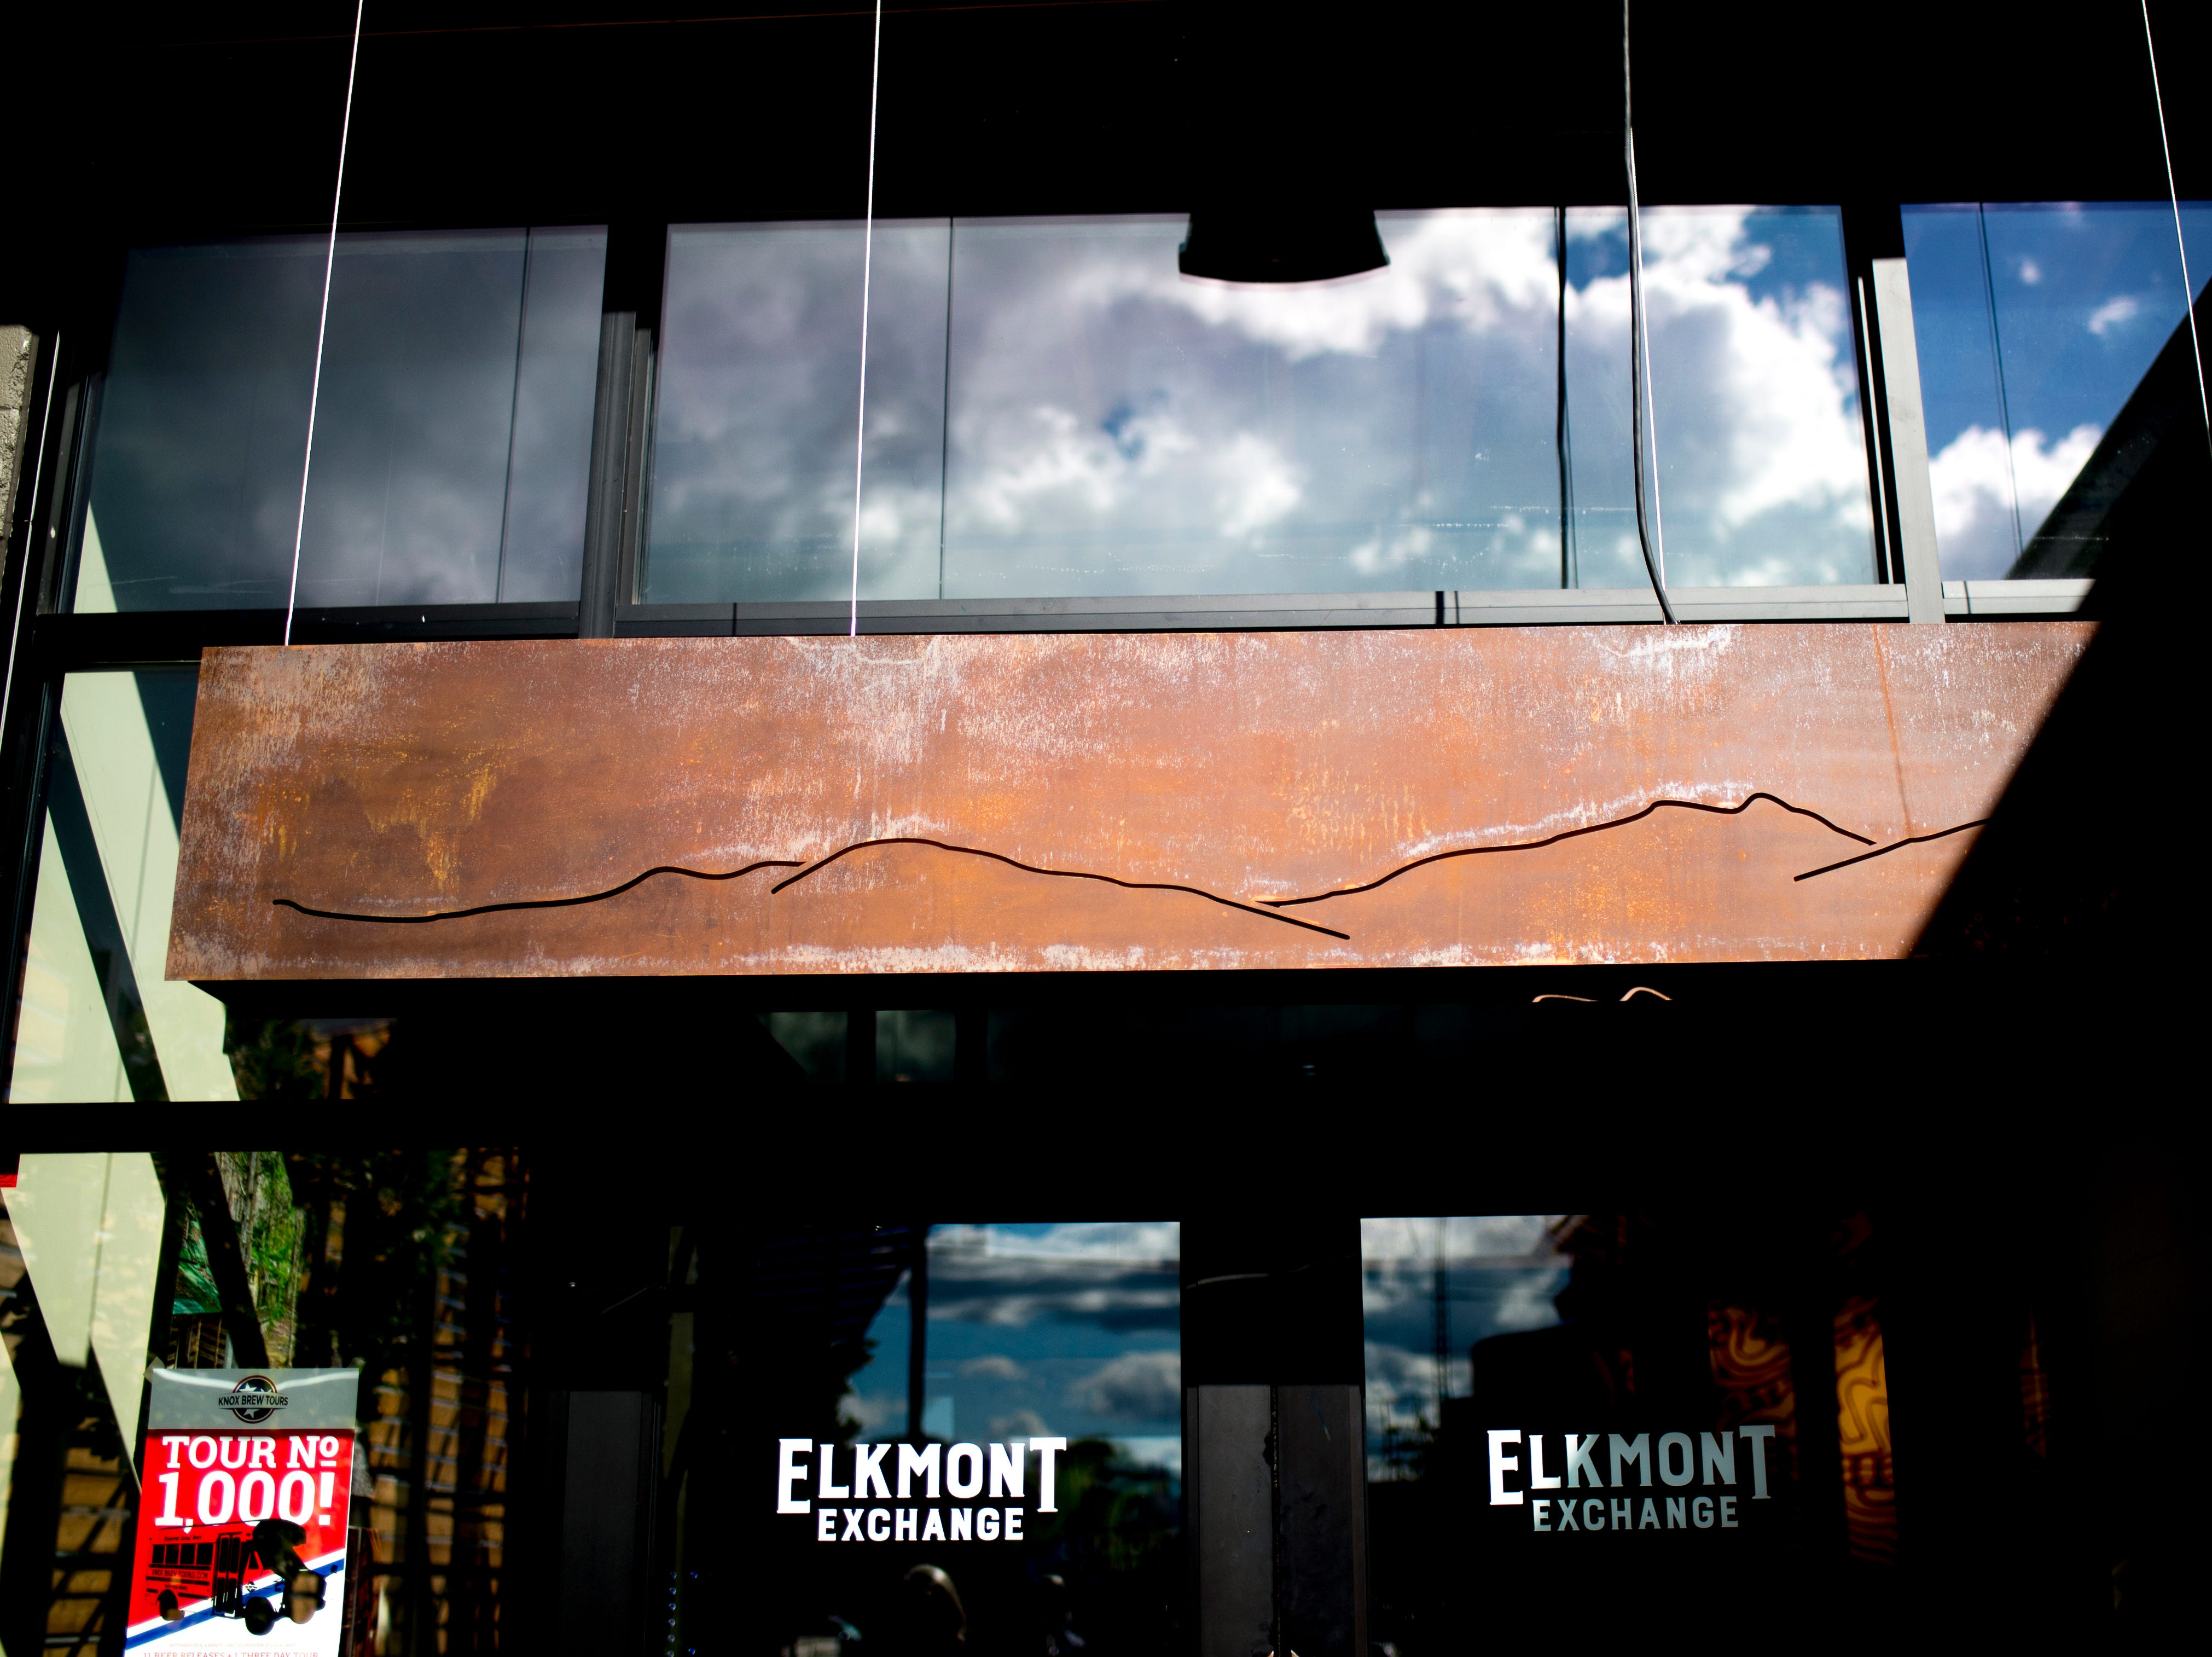 The main entrance to Elkmont Exchange in Knoxville, Tennessee on Friday, September 14, 2018. Elkmont Exchange features many fixtures and furniture inside the brewery and restaurant created by local makers.